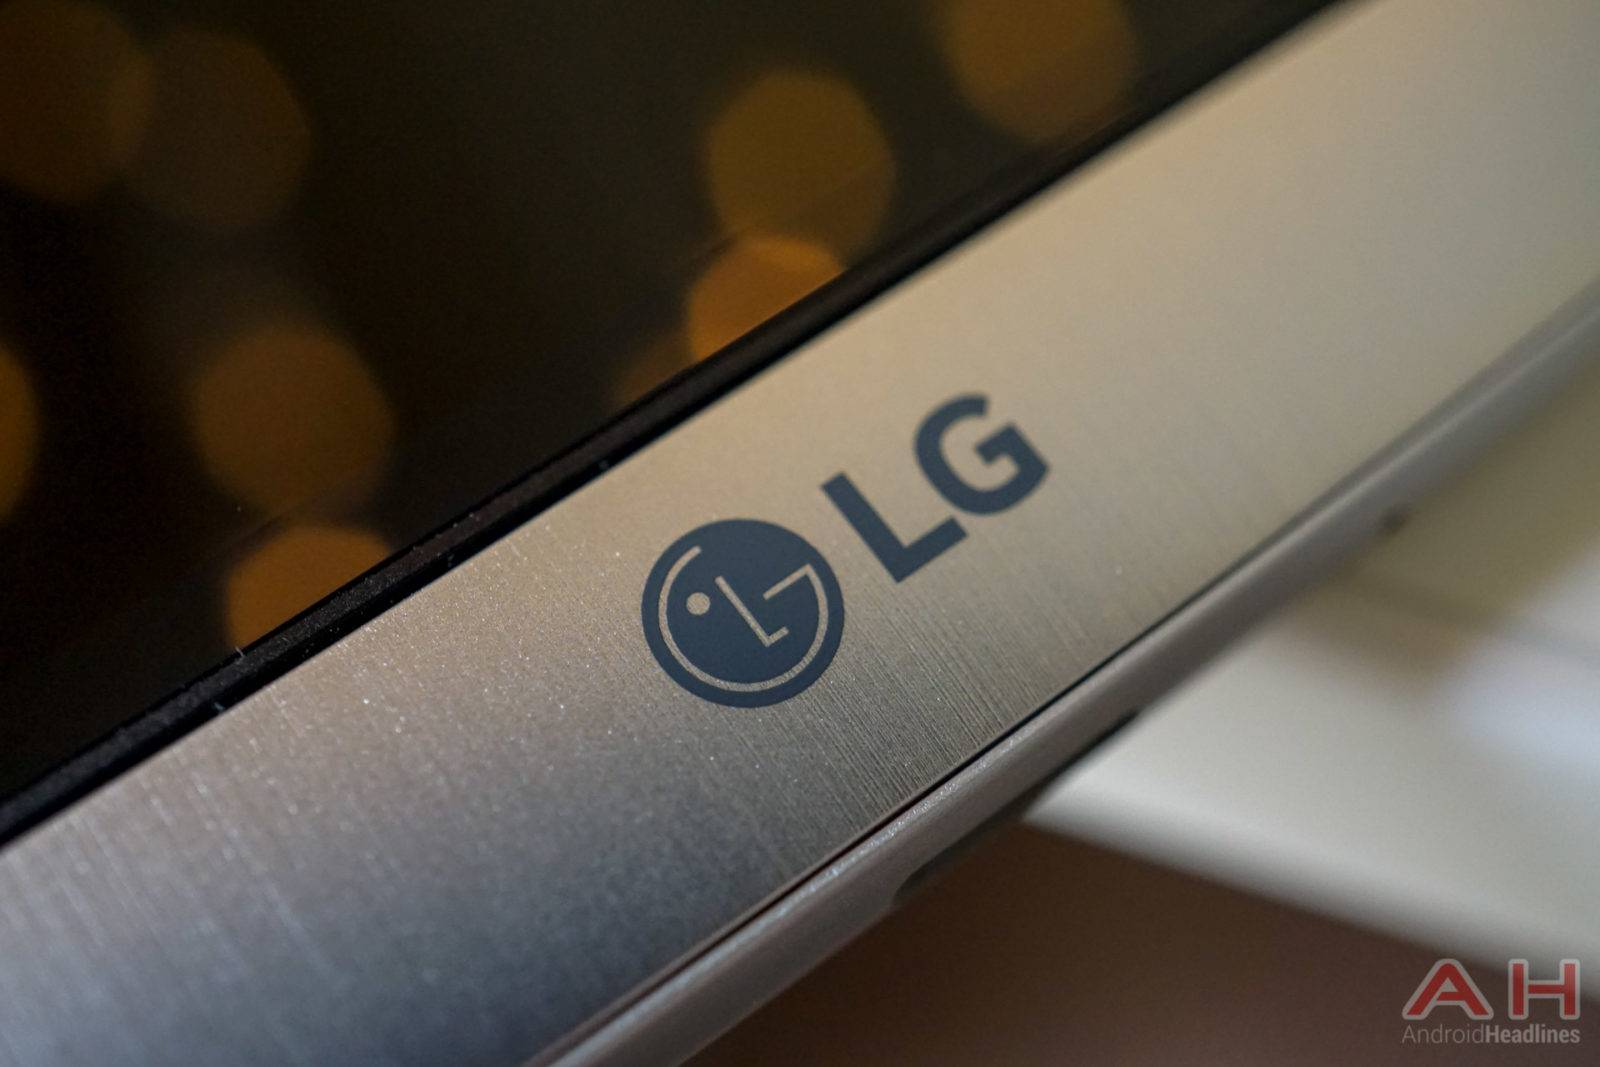 Budget-Friendly K30 From LG Comes To US Through T-Mobile